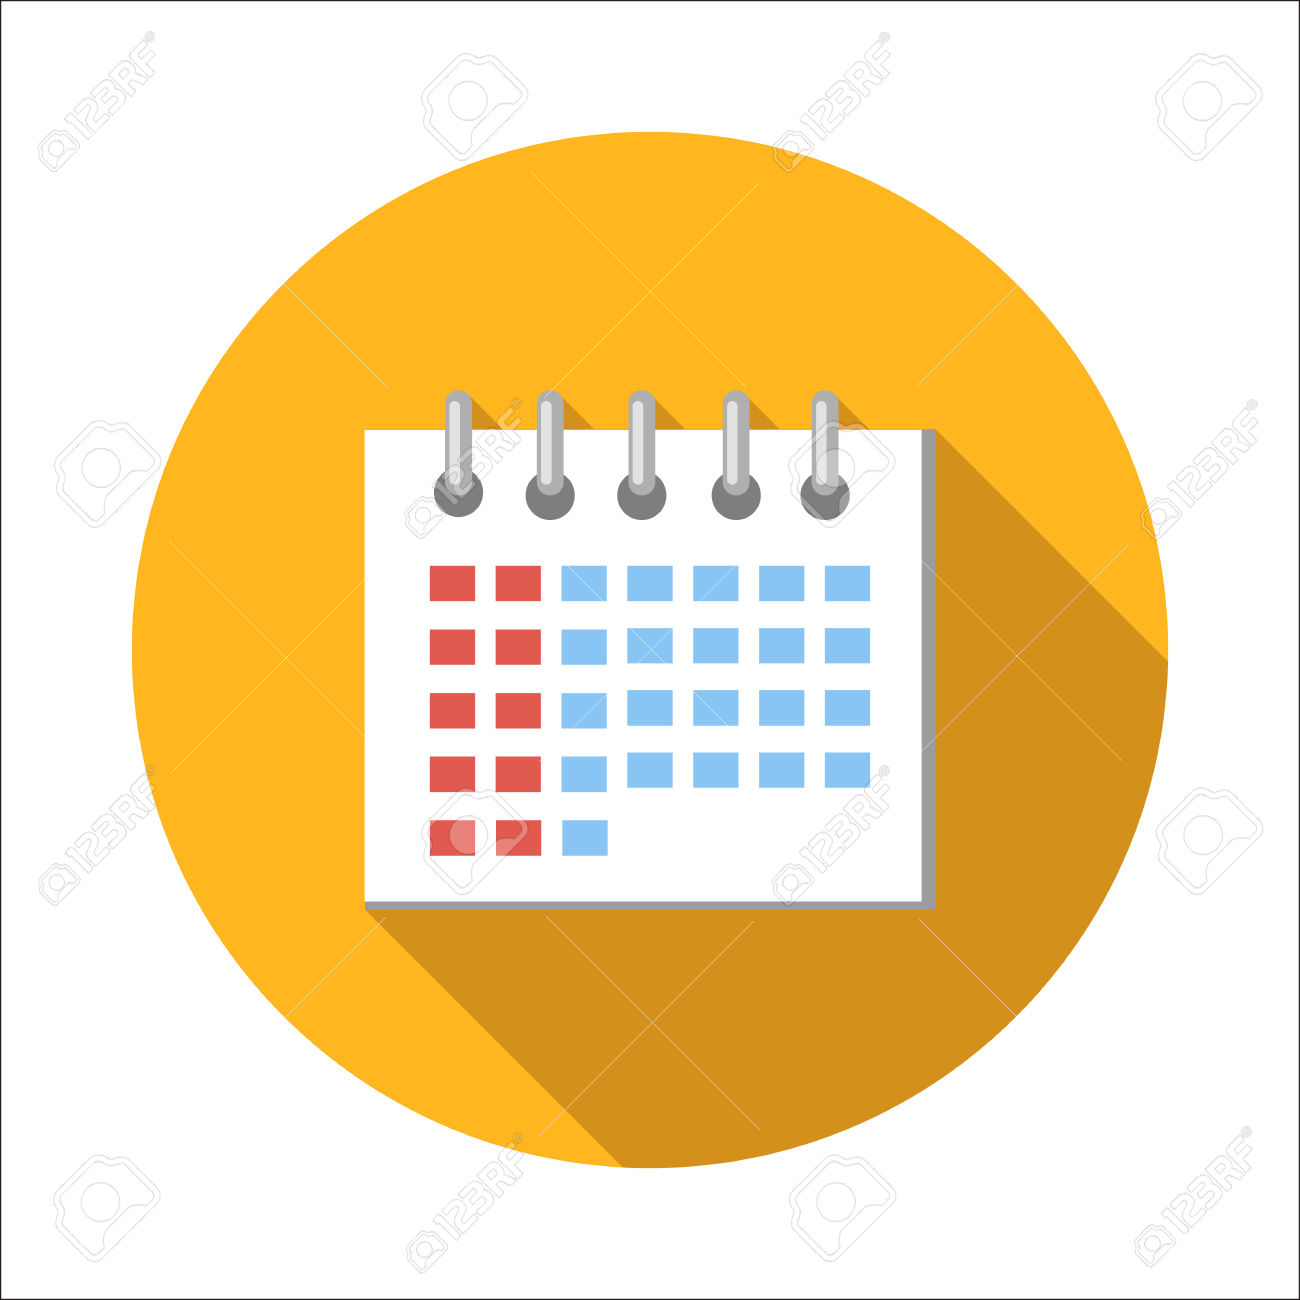 Calendar Flat Icon Isolated On White Background Royalty Free.